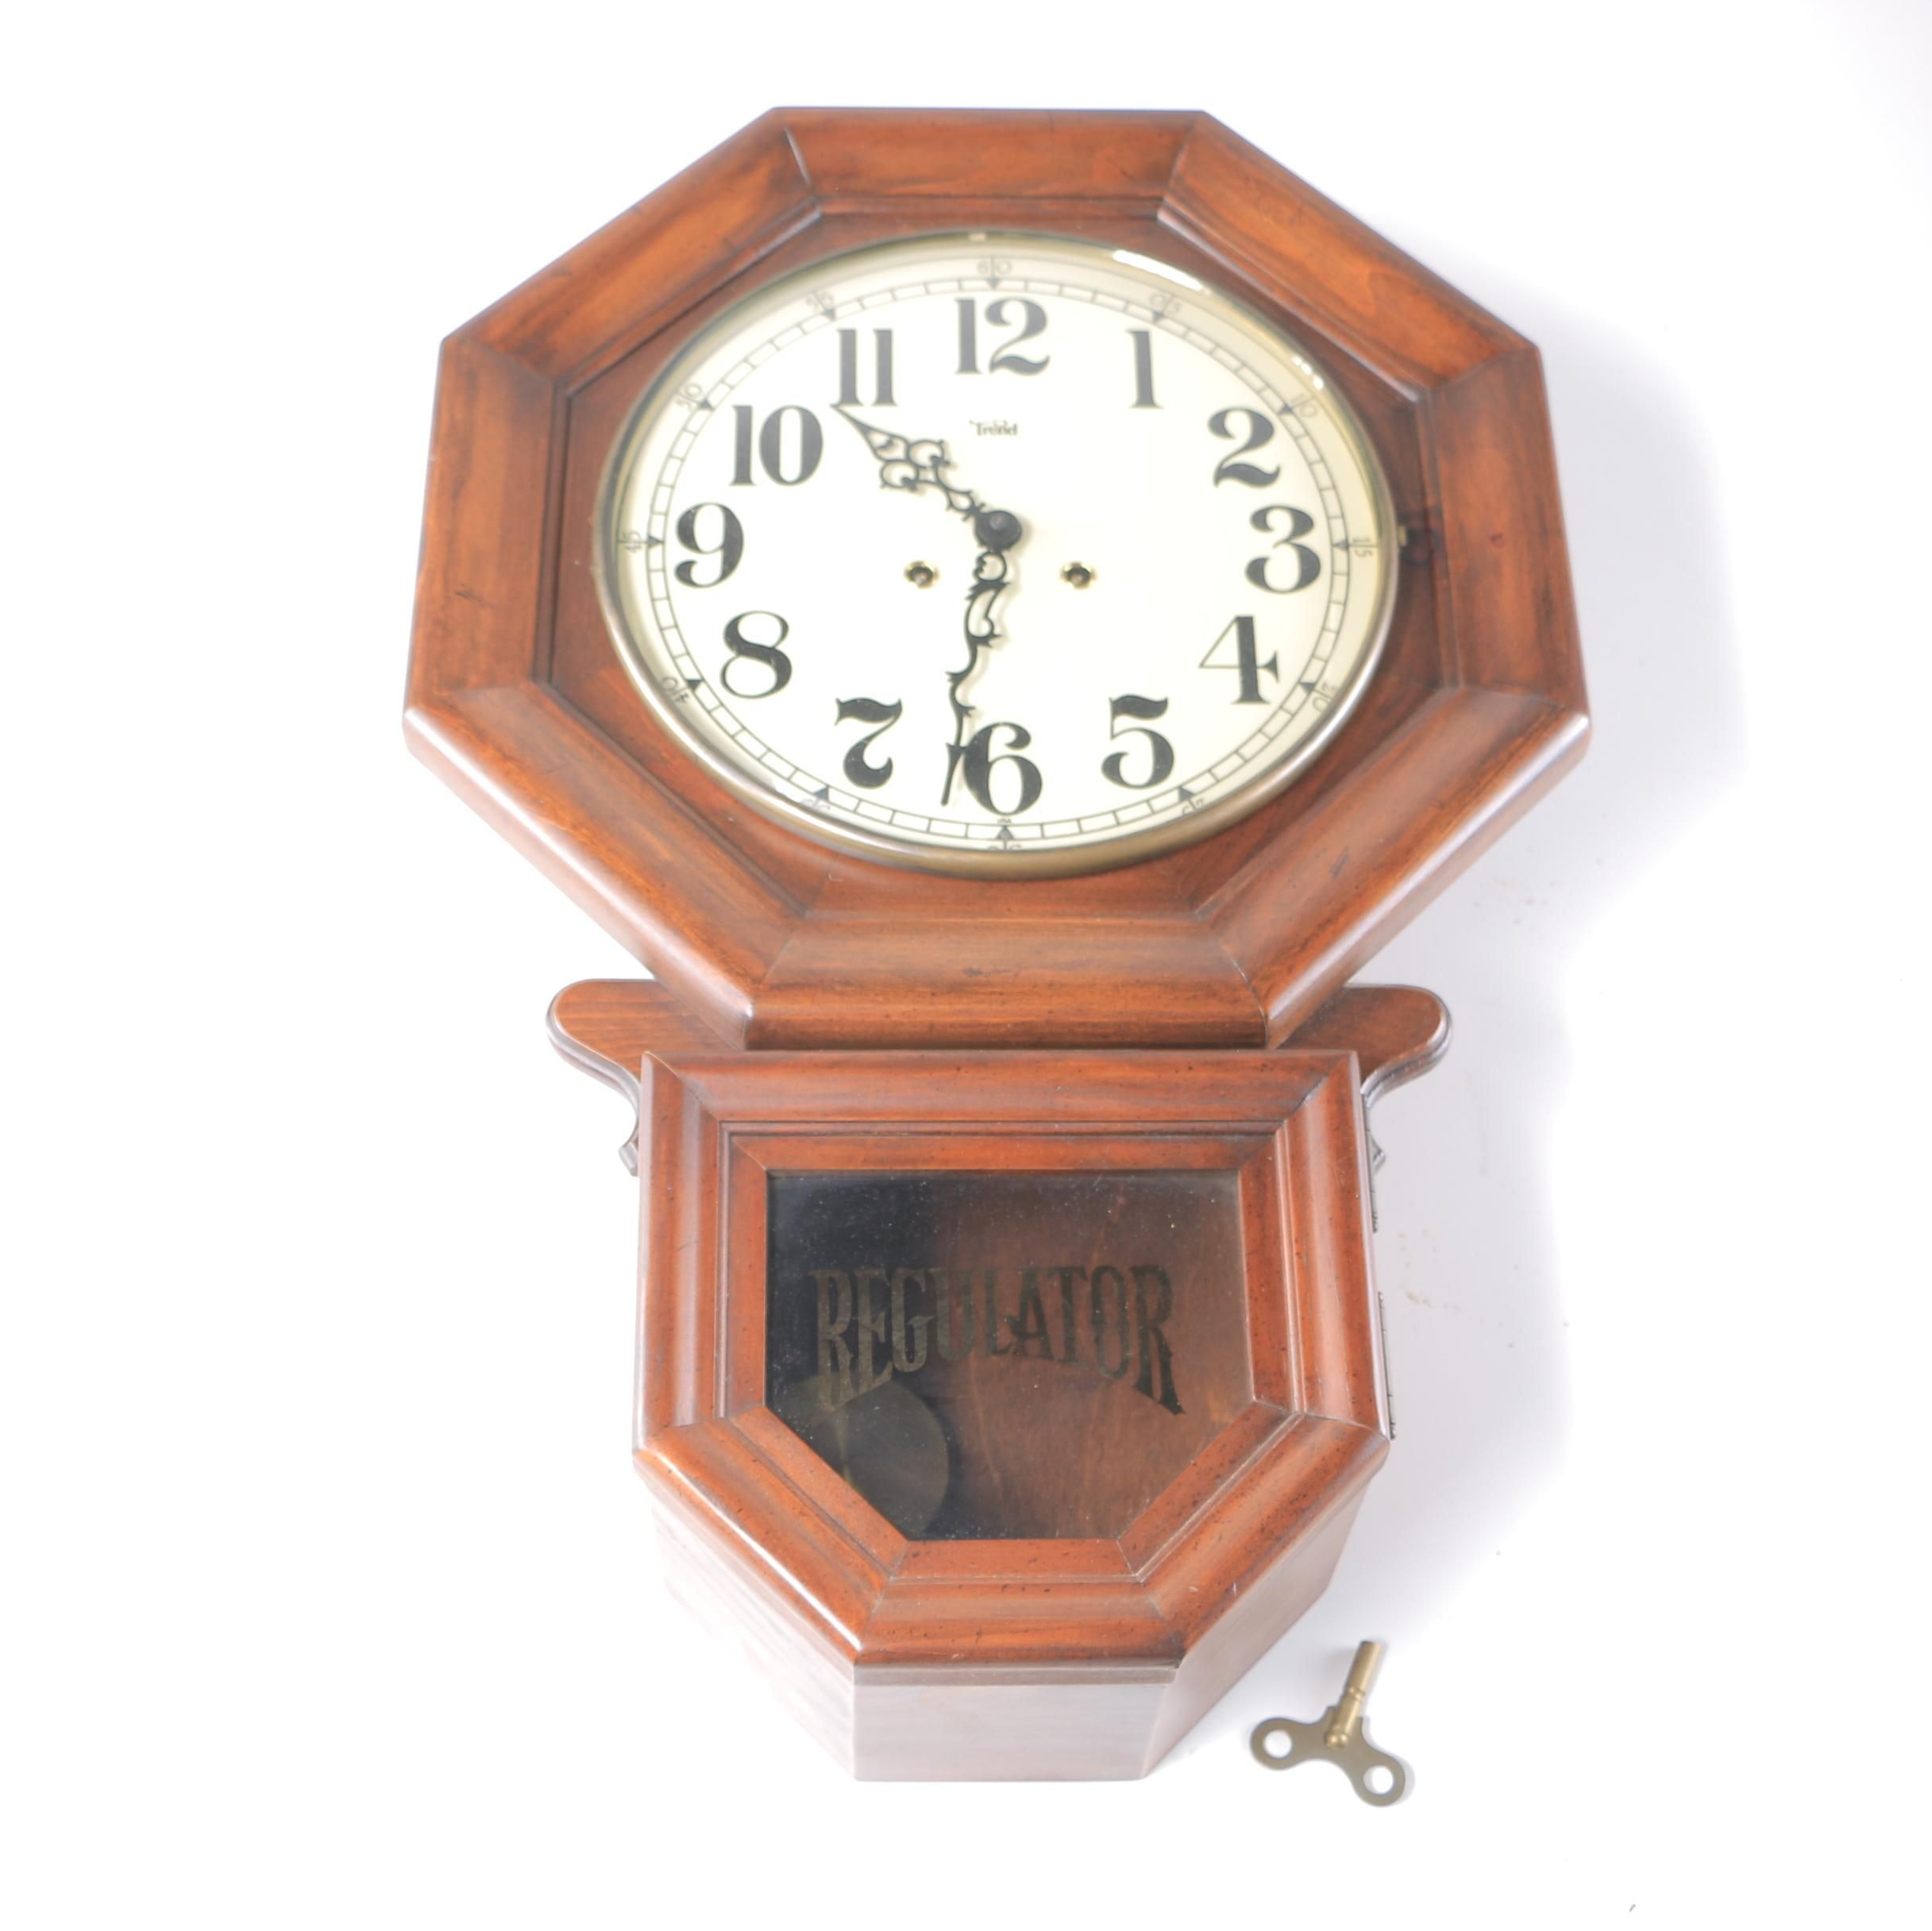 Trend Regulator Wall Clock